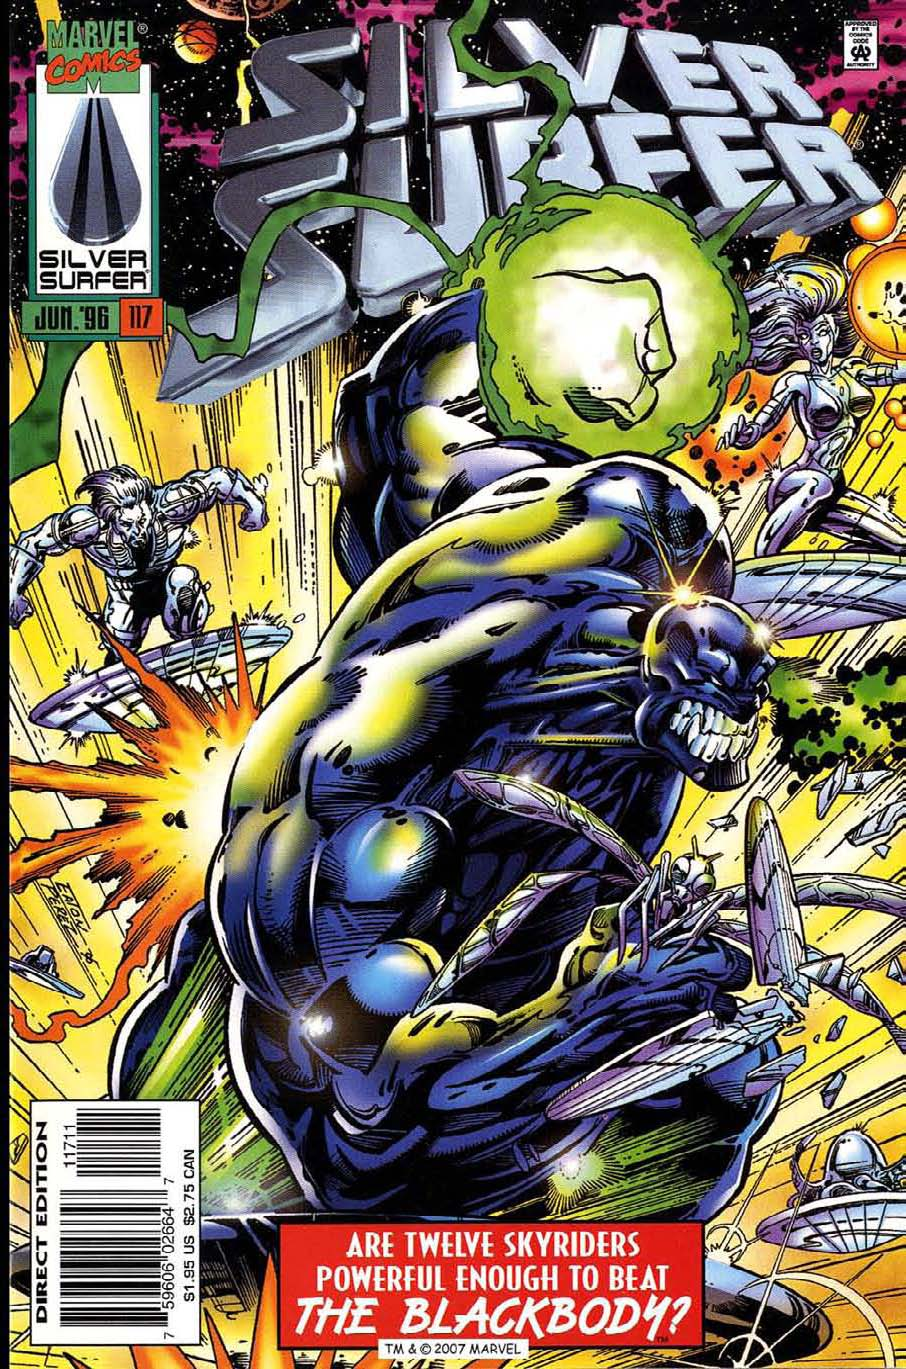 Read online Silver Surfer (1987) comic -  Issue #117 - 1